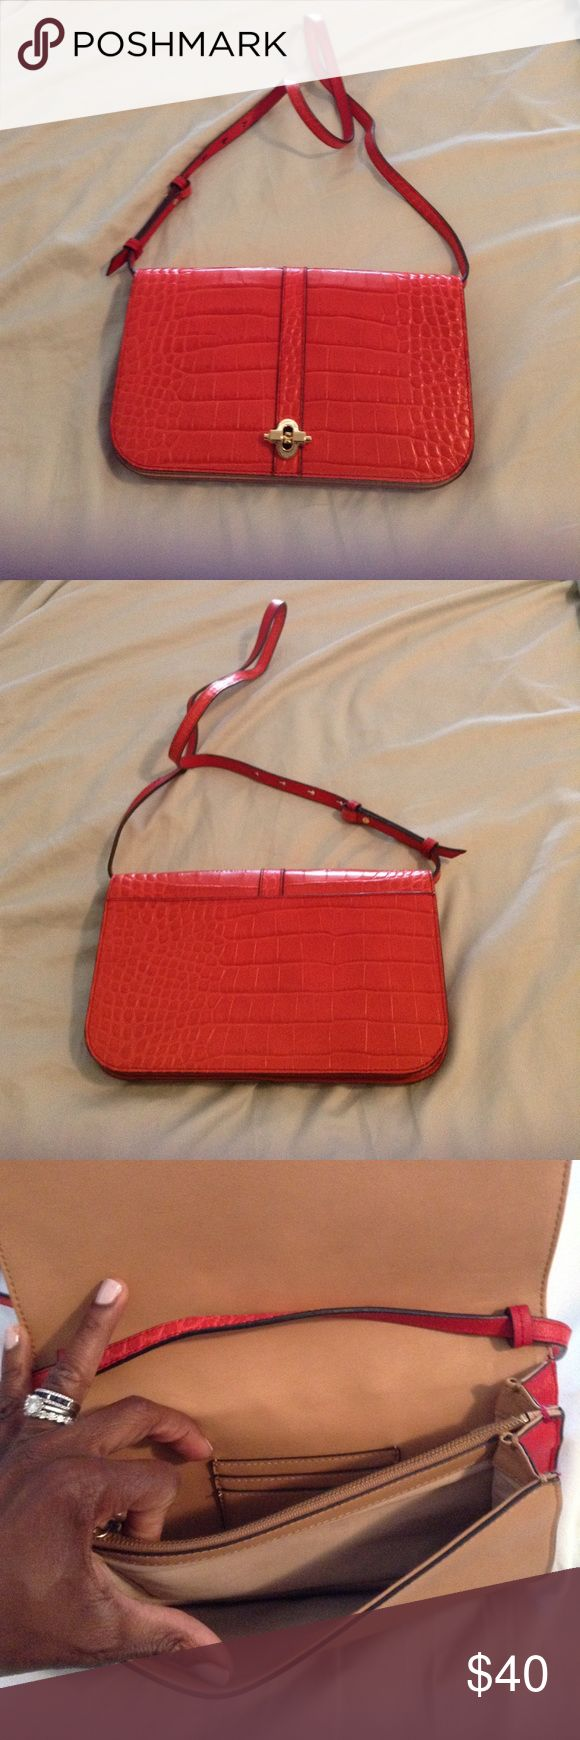 Banana Republic clutch/cross body Barely used (carried it once!). Coral red color, alligator embossed leather. Removable strap, inside slots for credit cards. Super cute! Banana Republic Bags Crossbody Bags